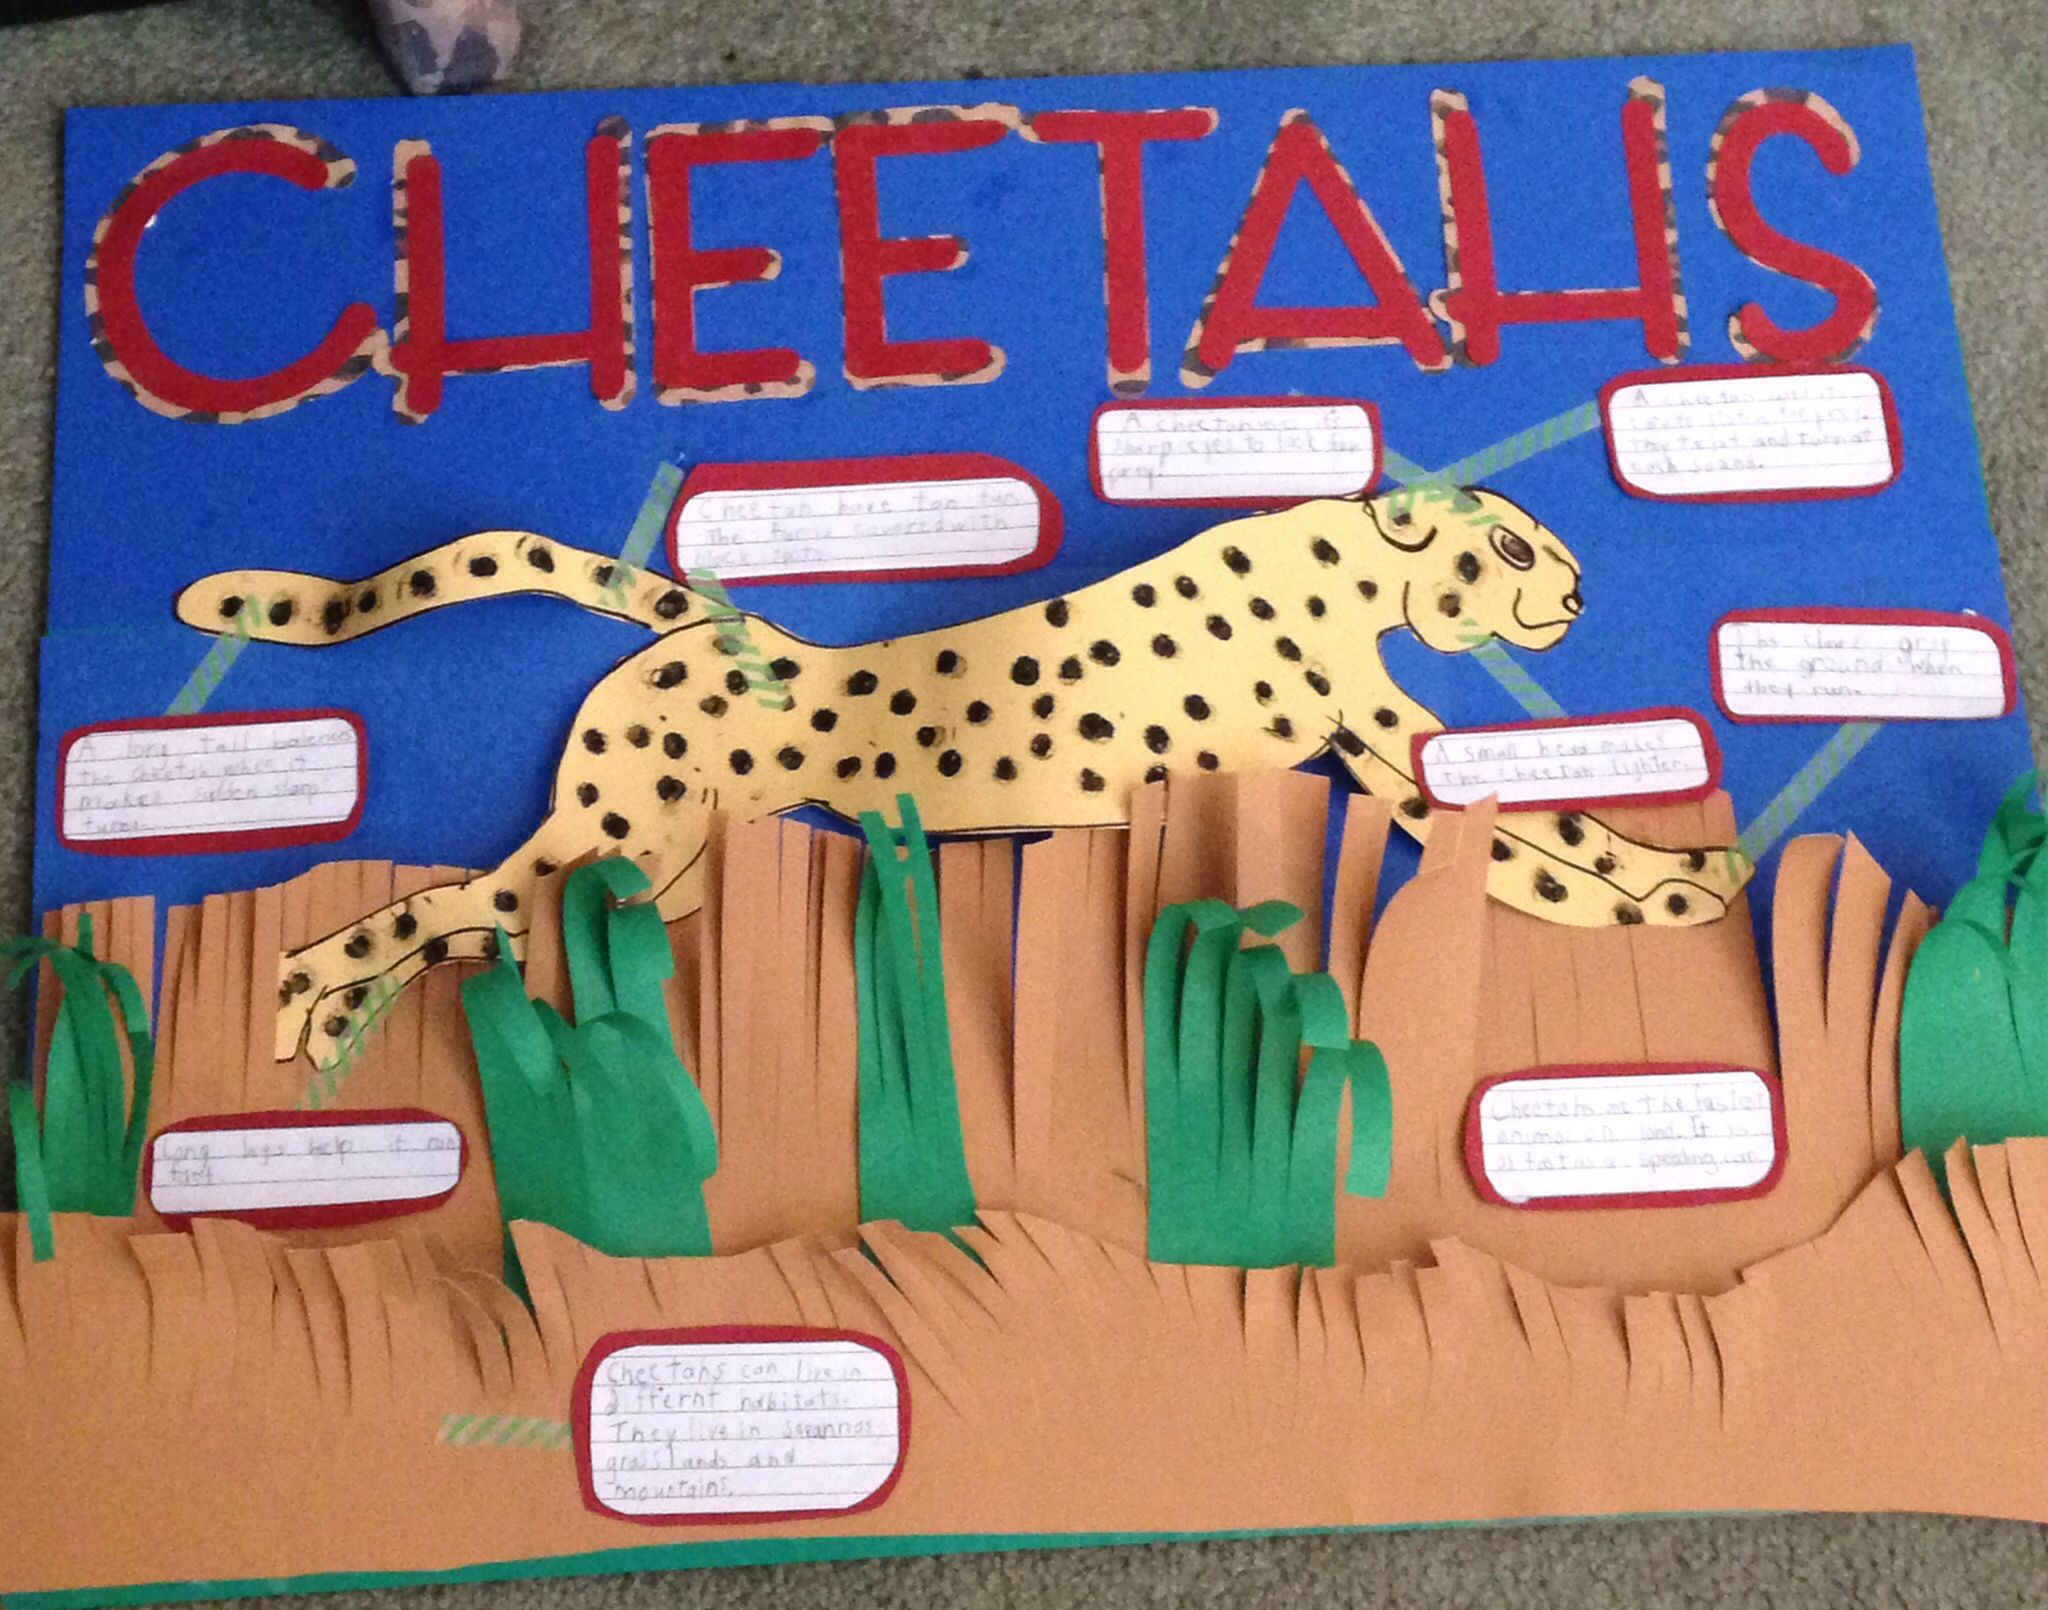 Cheetah Project Poster School Projects For Primary School